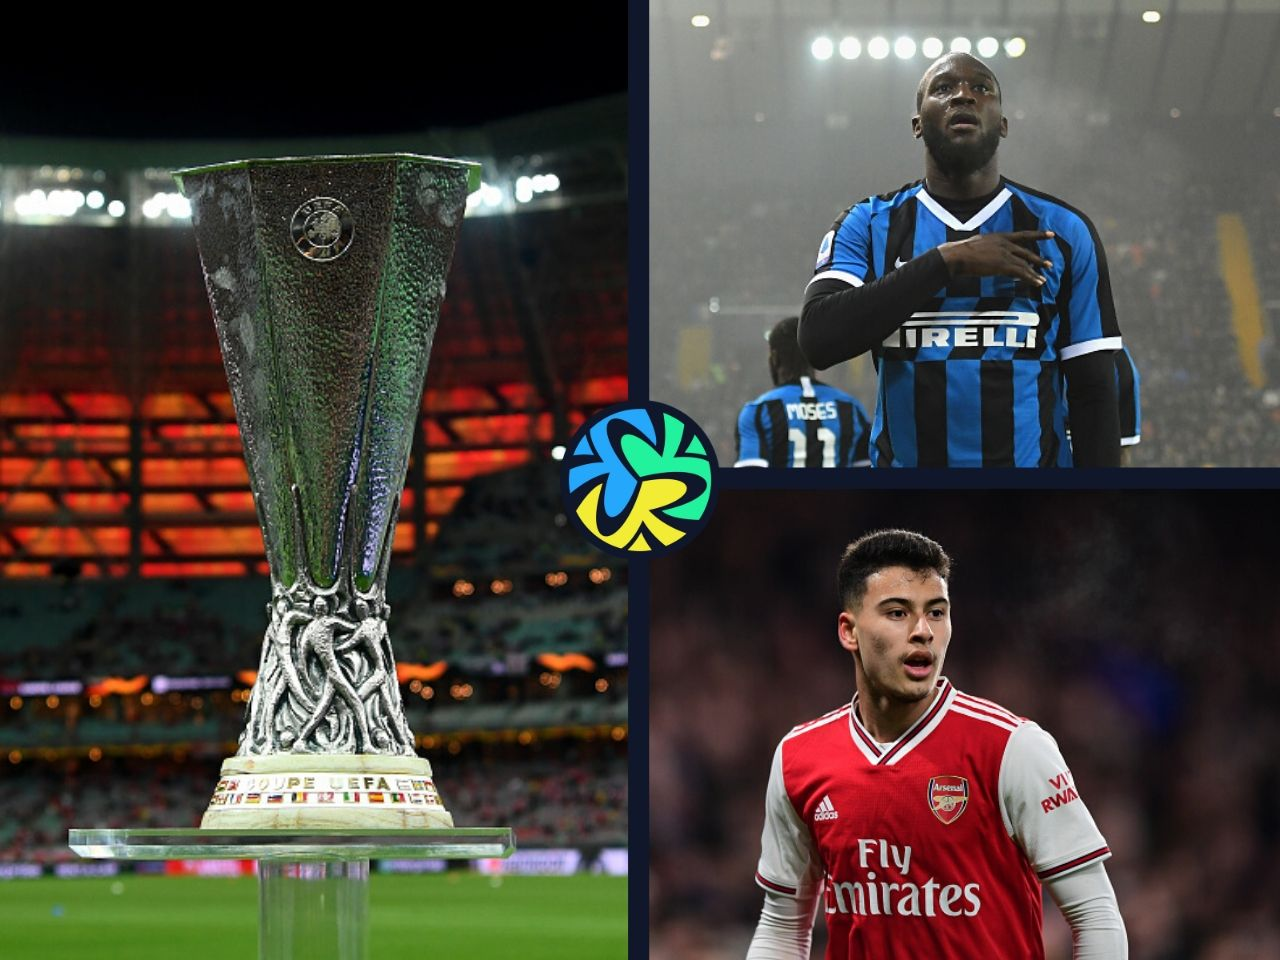 Top 5 football players to watch out for in the Europa League